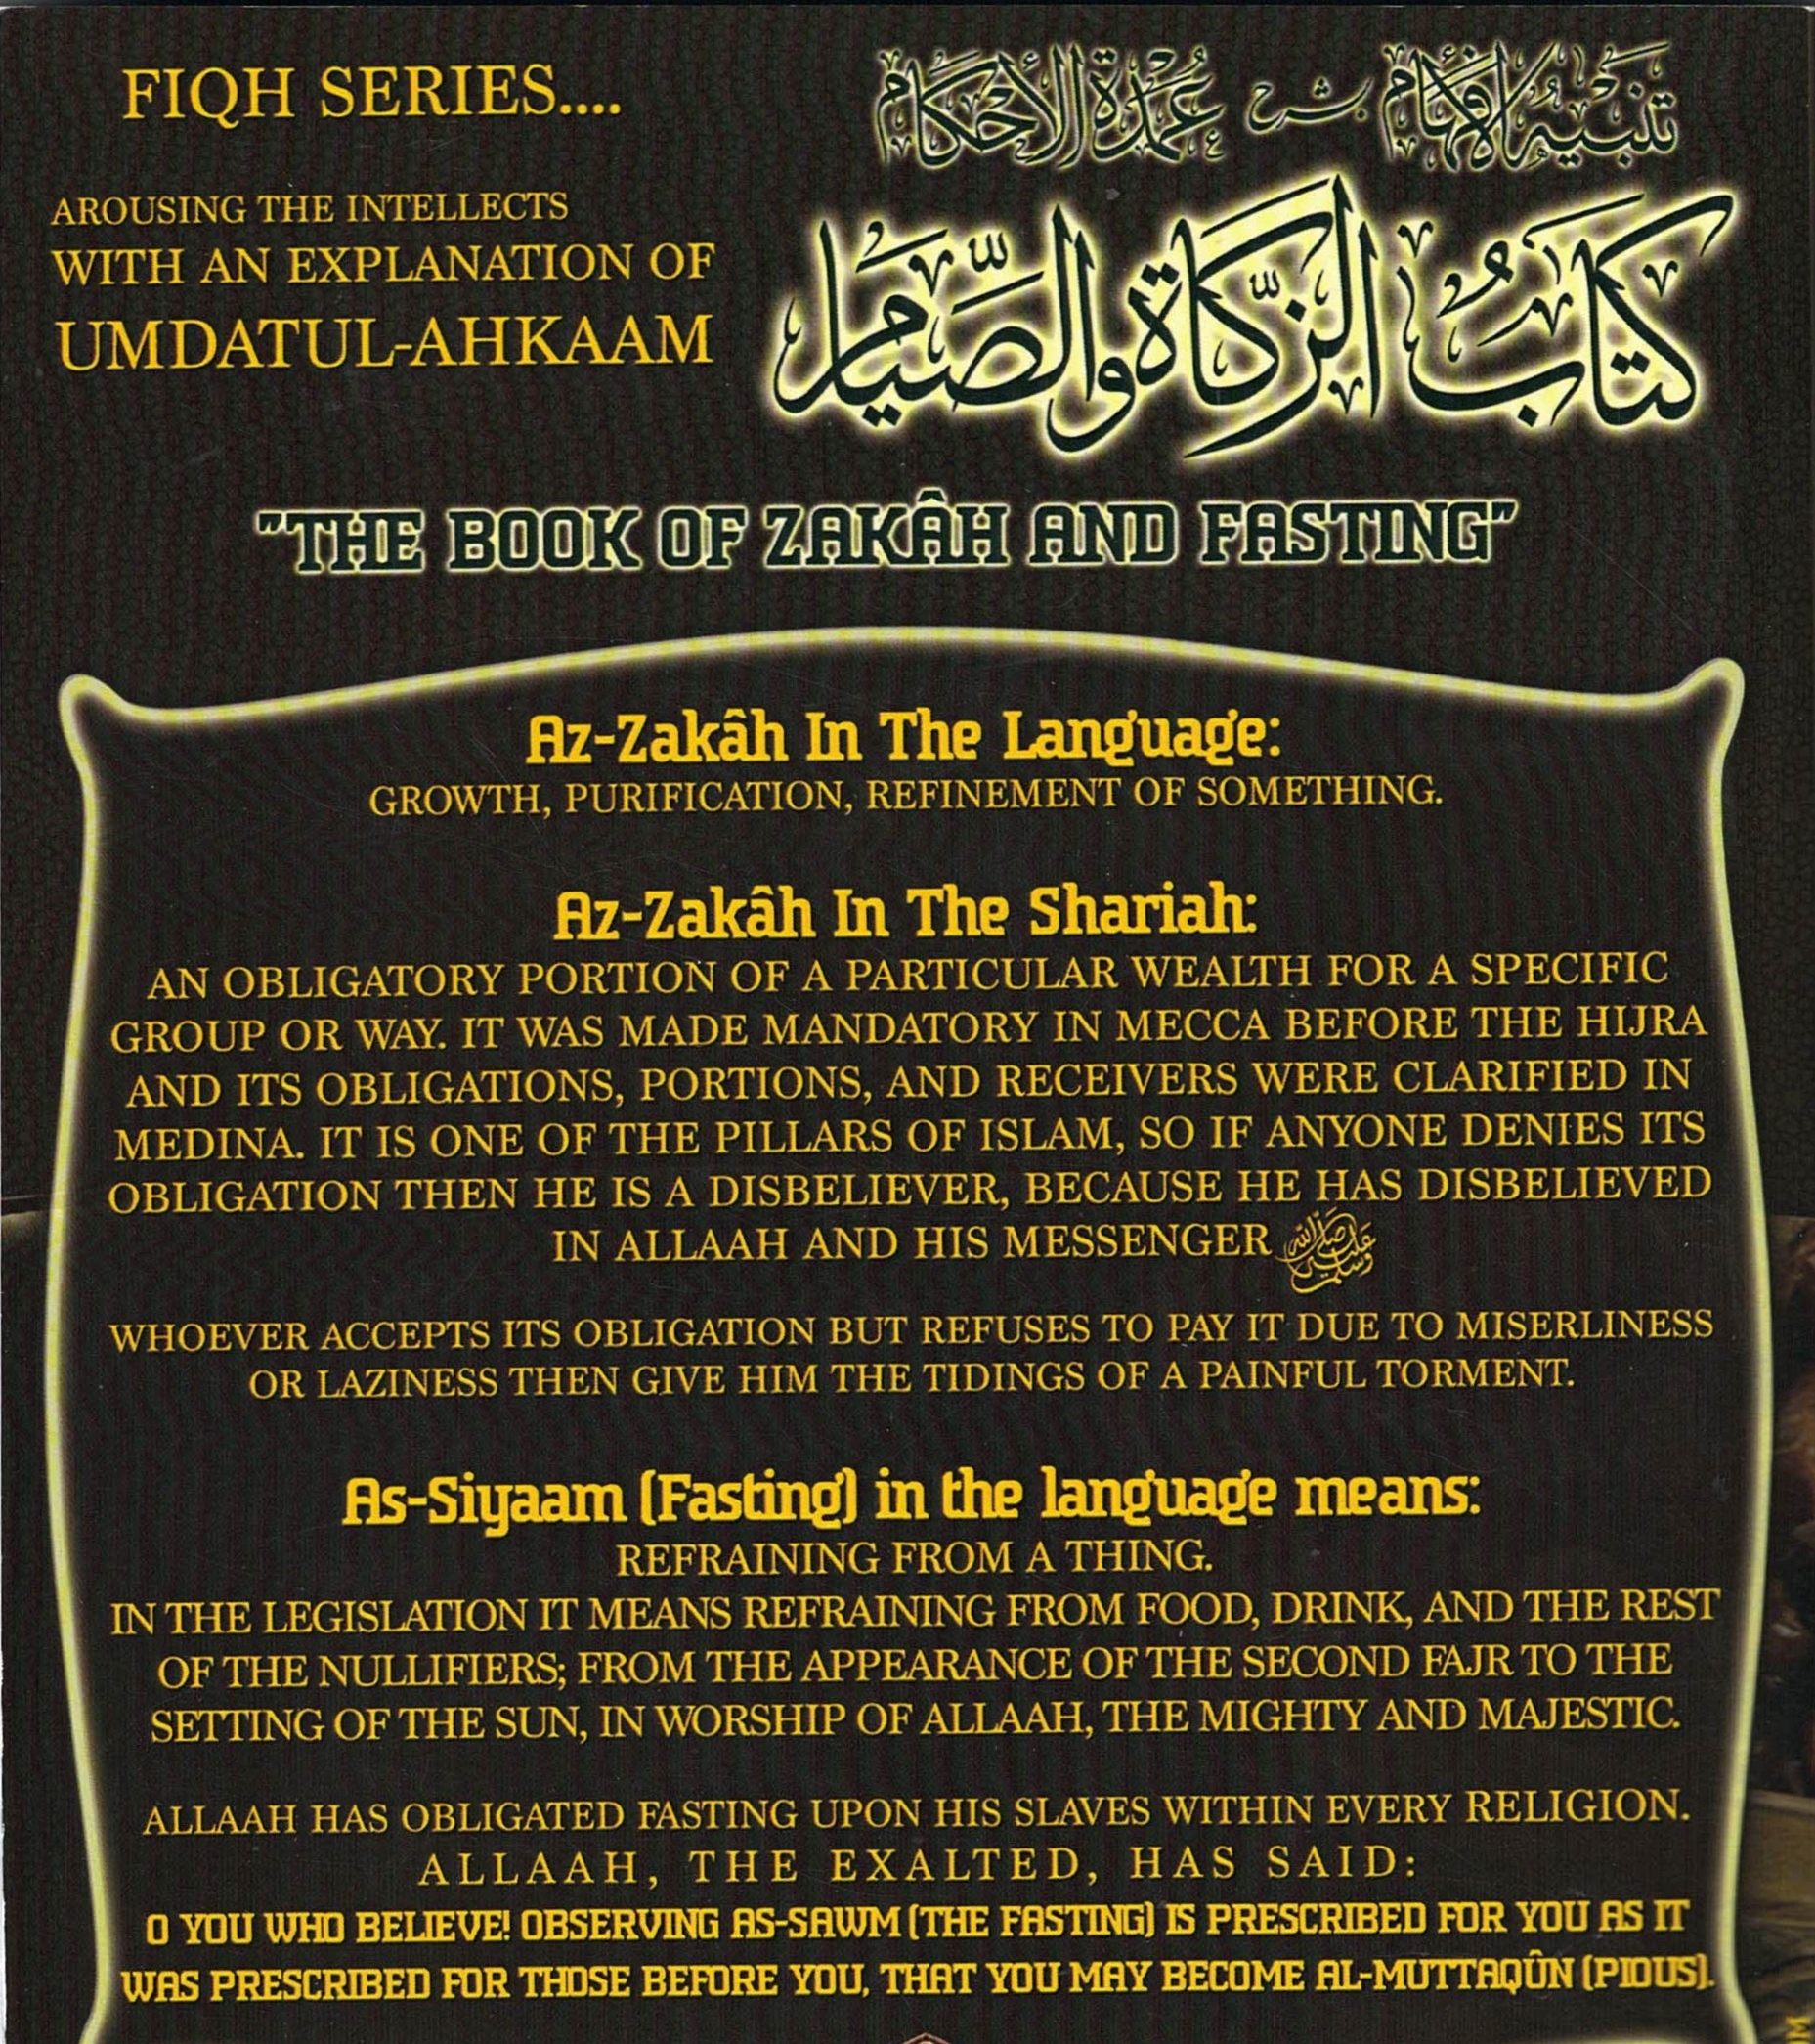 arousing-intellects-with-explanation-of-umdatul-ahkaam-book-of-zakah-fasting-2-copy.jpg